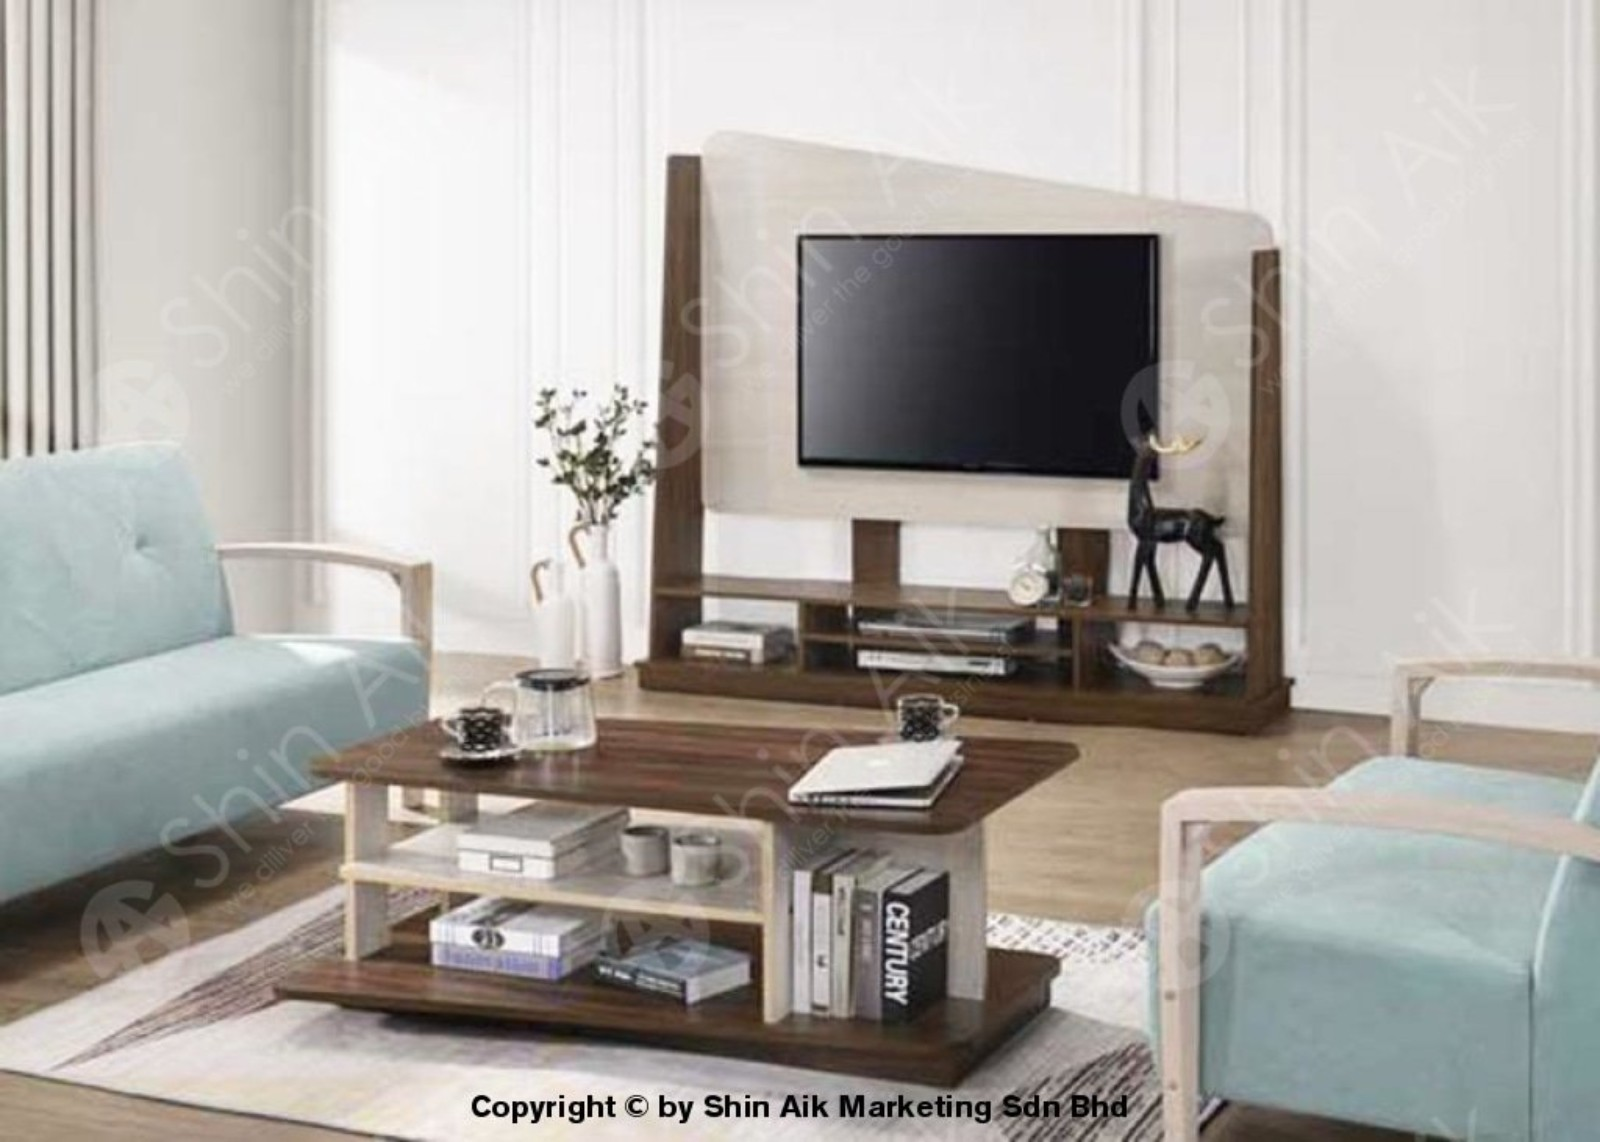 TV Display / Divider & Coffee Table